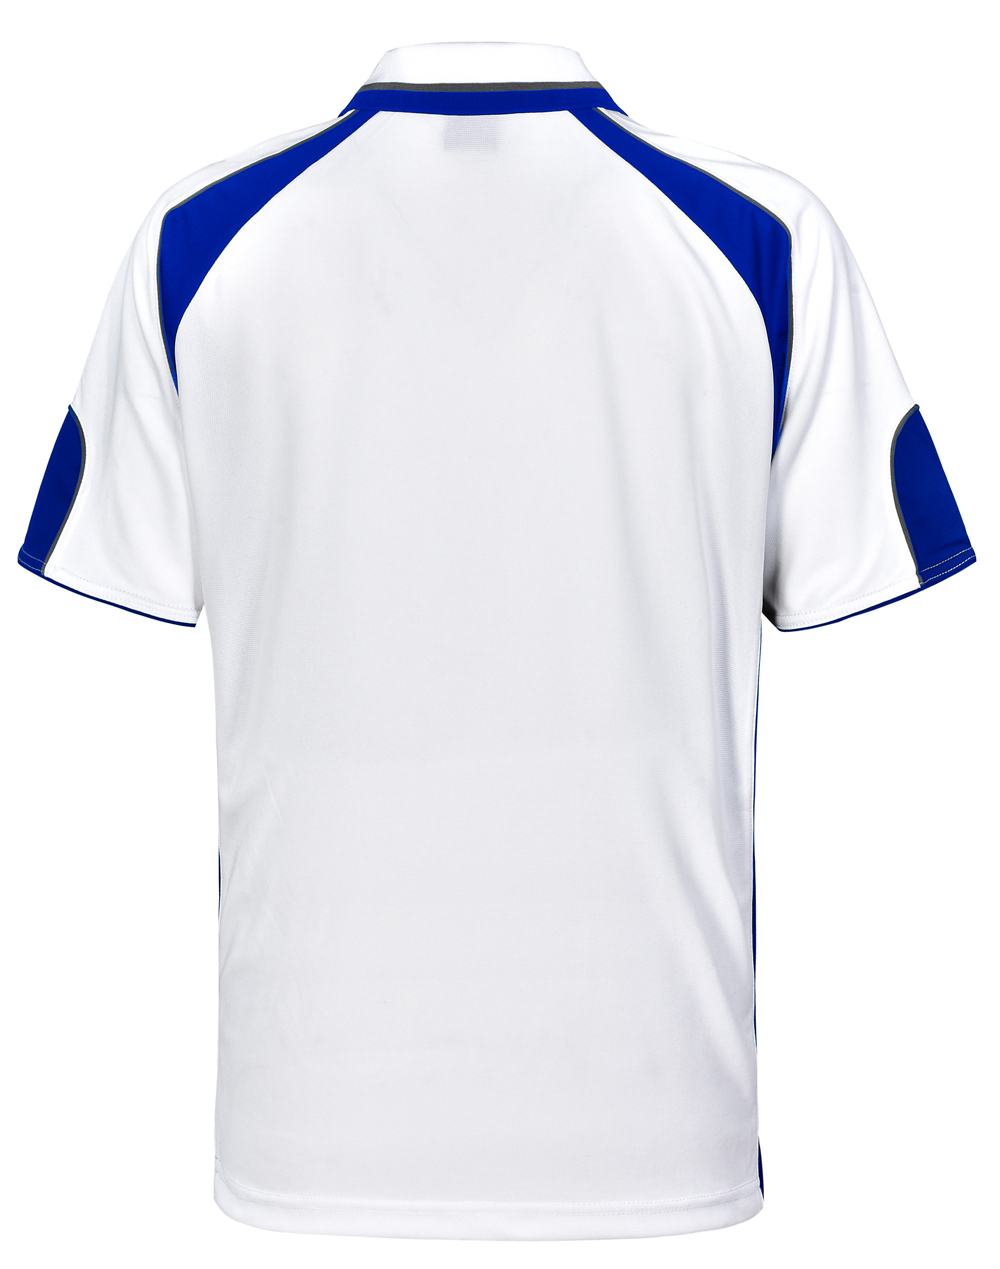 https://s3-ap-southeast-1.amazonaws.com/ws-imgs/POLOSHIRTS/PS61_WhiteRoyal_Back.jpg